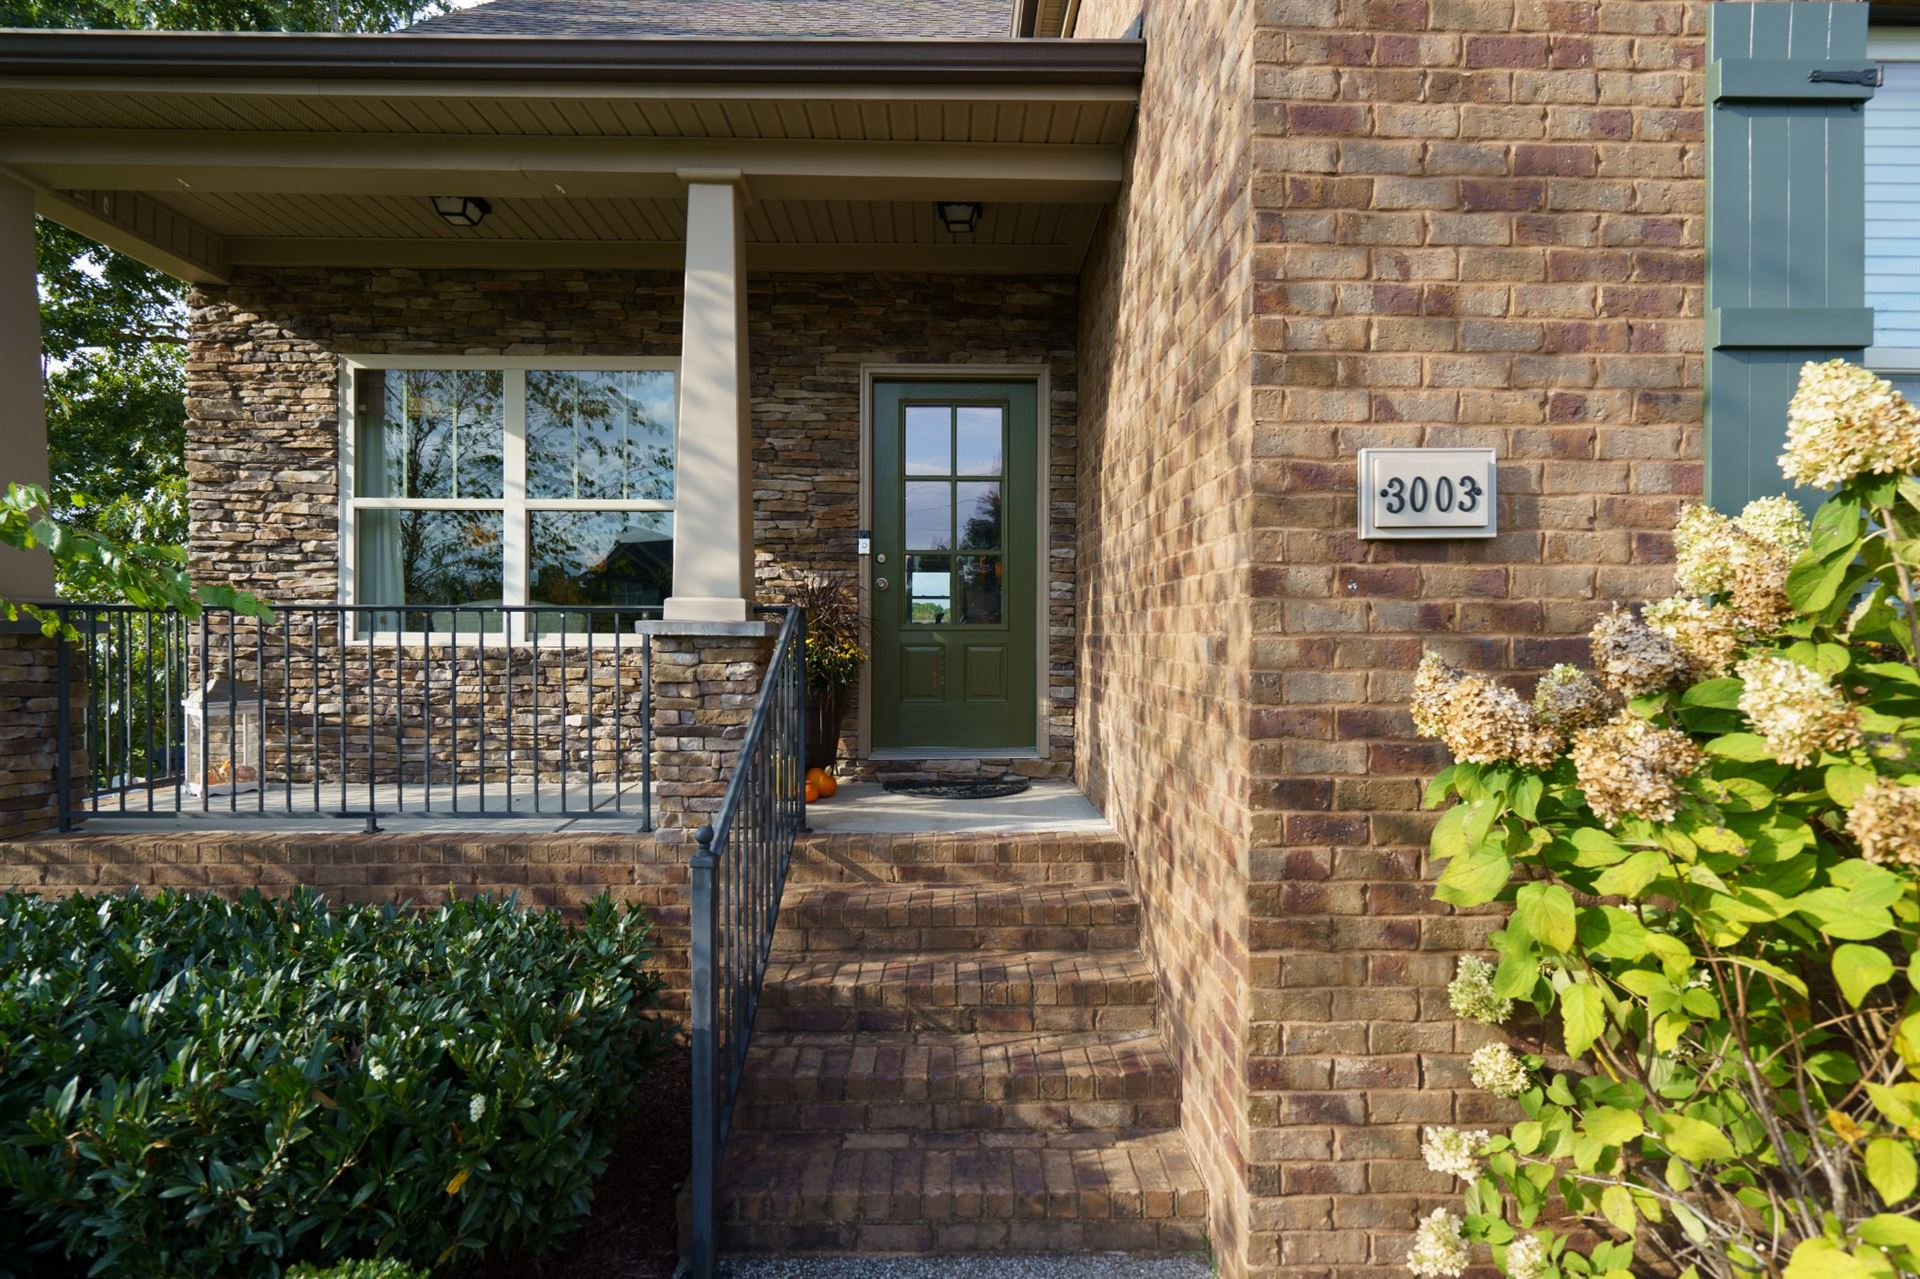 Photo of 3003 Manchester Dr, Spring Hill, TN 37174 (MLS # 2300226)